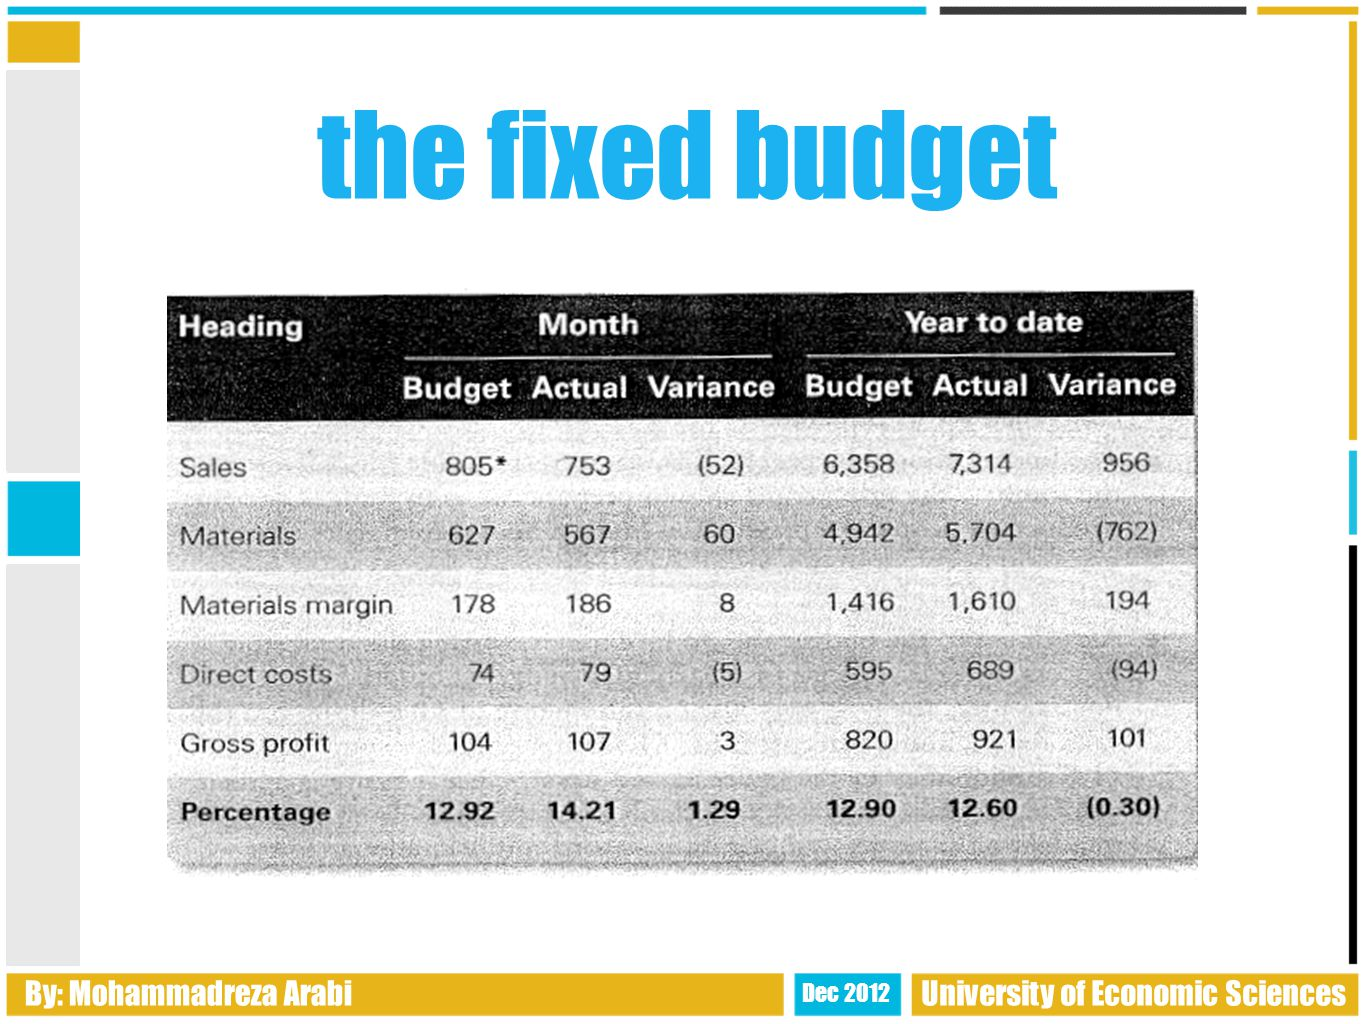 By: Mohammadreza Arabi Dec 2012 University of Economic Sciences the fixed budget